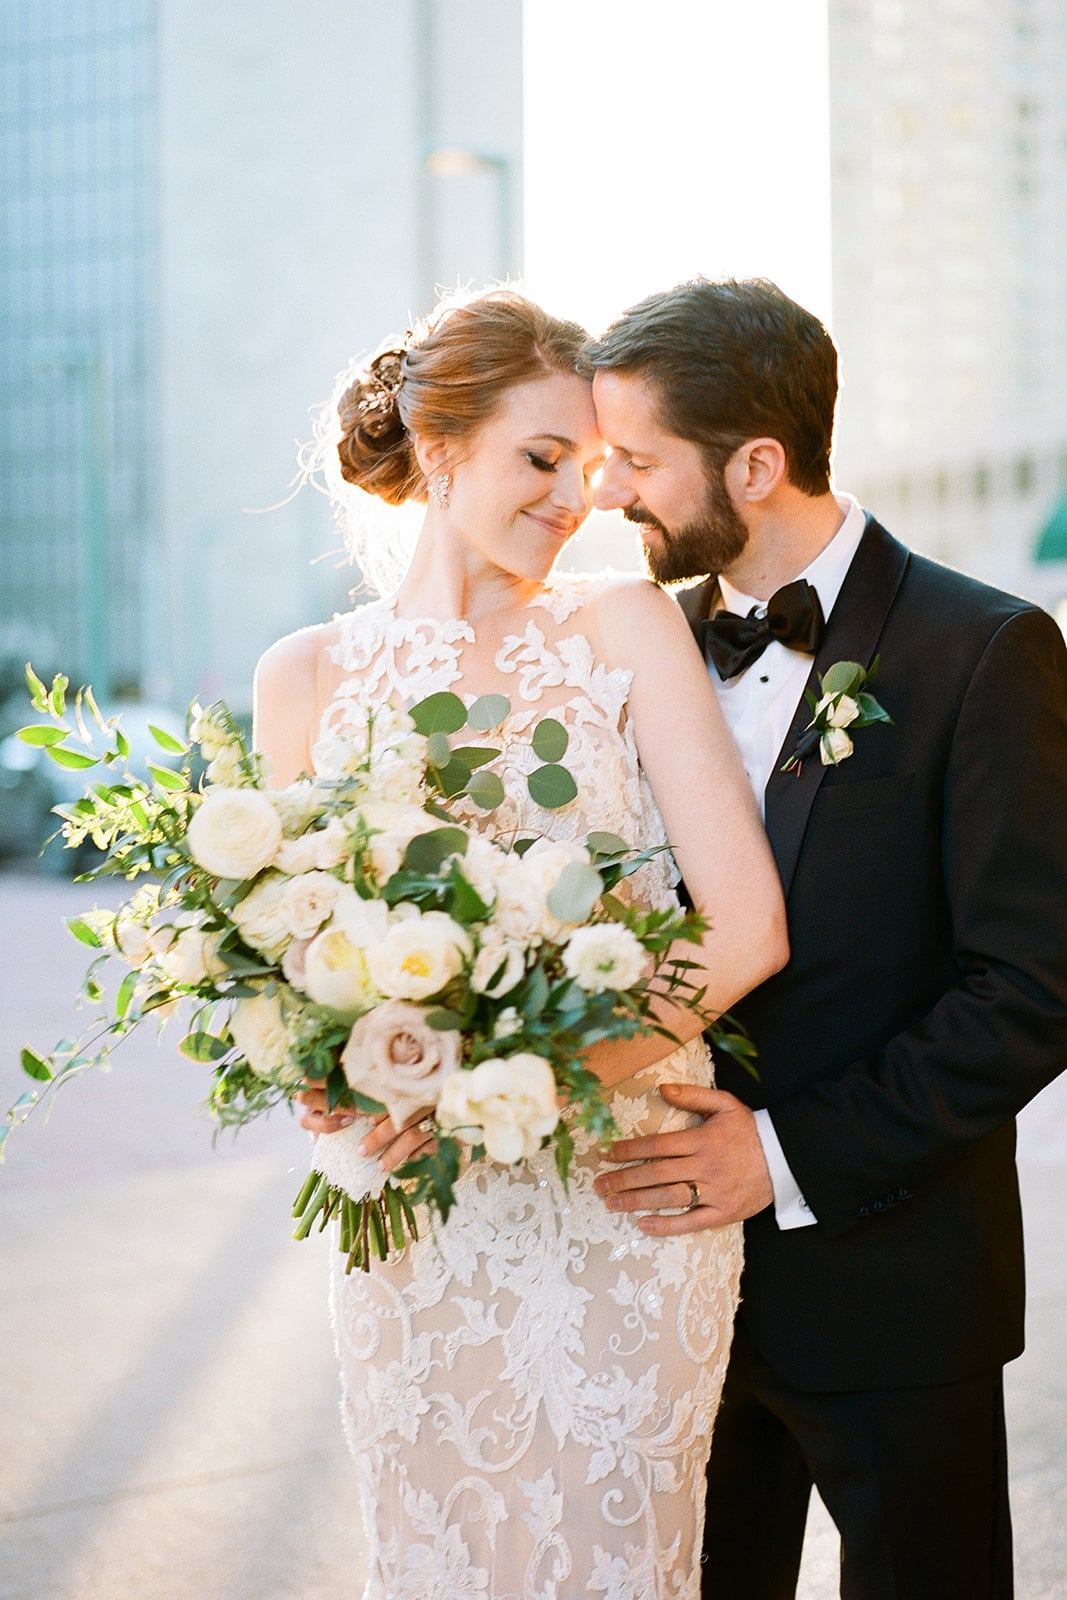 Pittsburgh wedding at The Pennsylvanian captured by Lauren Renee